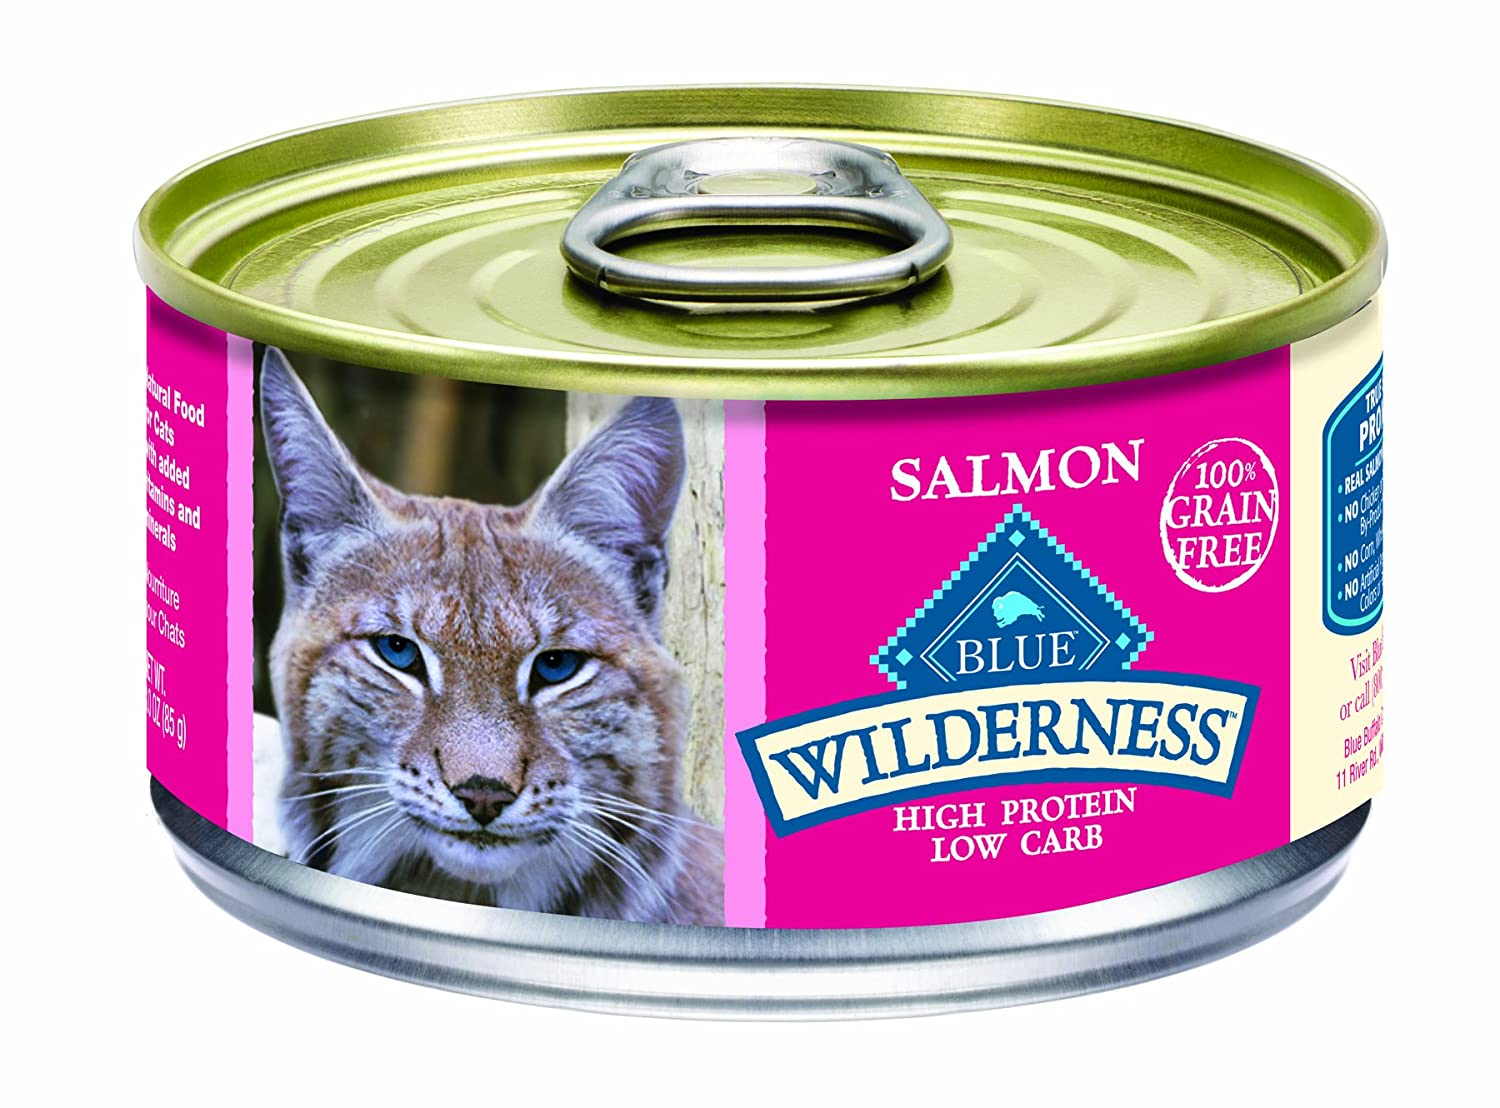 Blue Wilderness Salmon Canned Cat Food Is A Big Hit Here